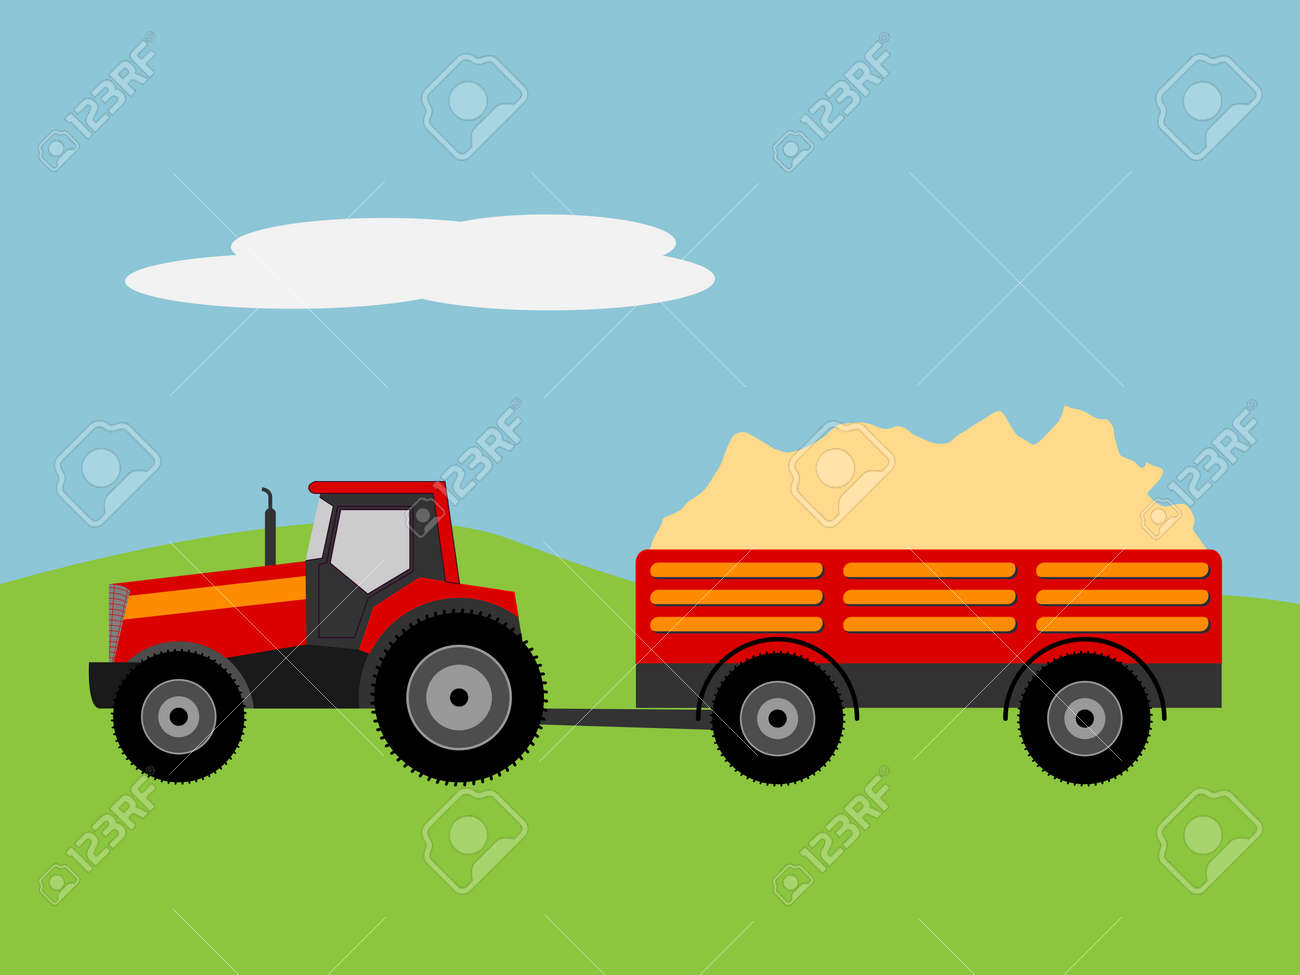 Vector illustration of a tractor with tug - 30607508